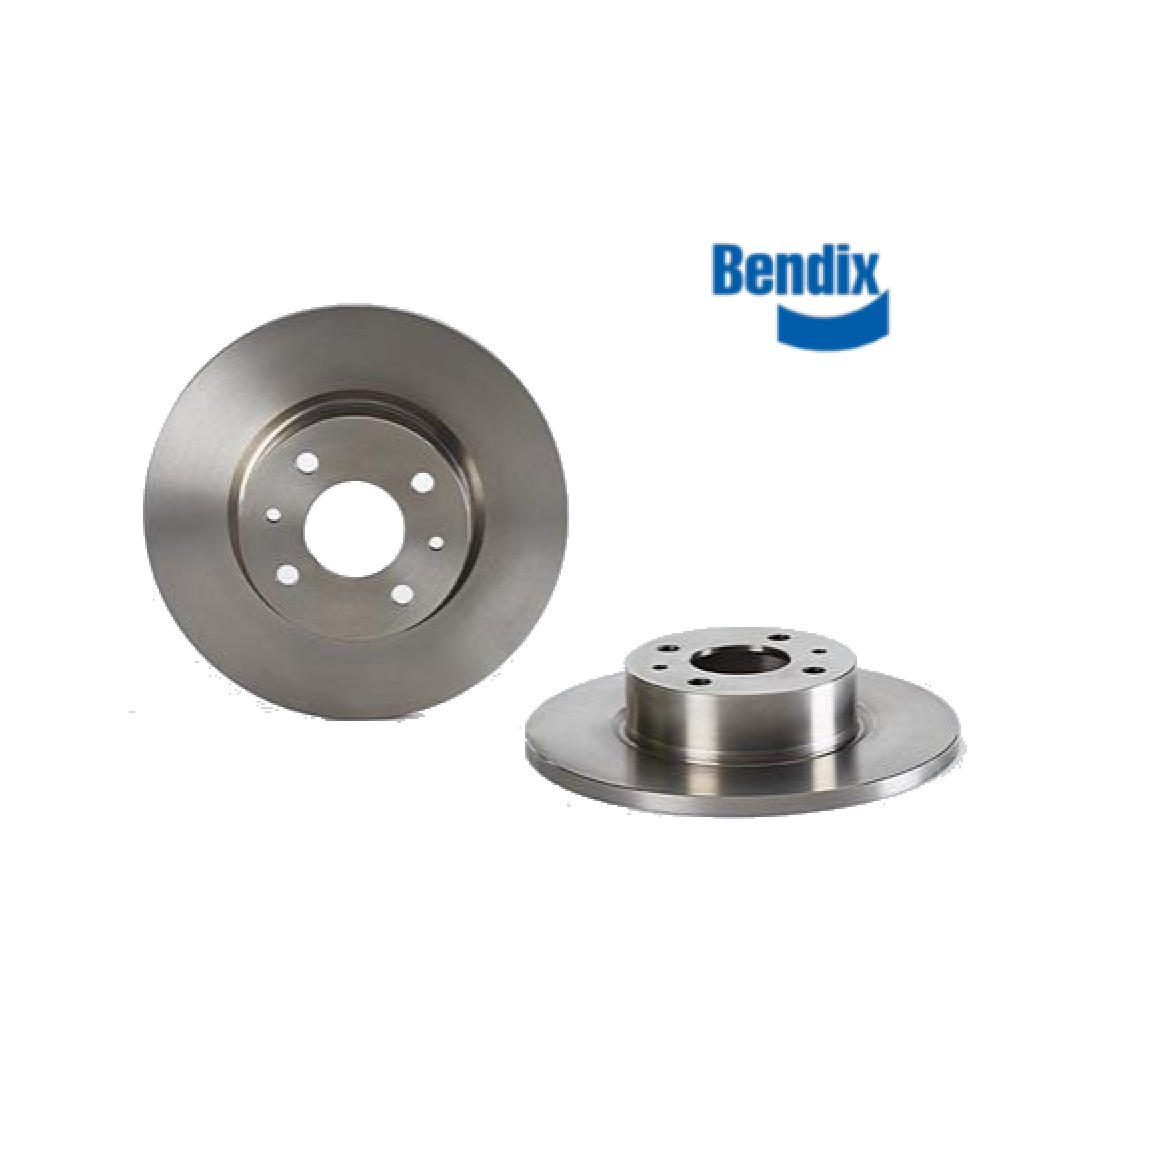 PAIR OF FRONT BRAKE DISCS FIAT CROMA - LANCIA THEMA BENDIX FOR 82387932